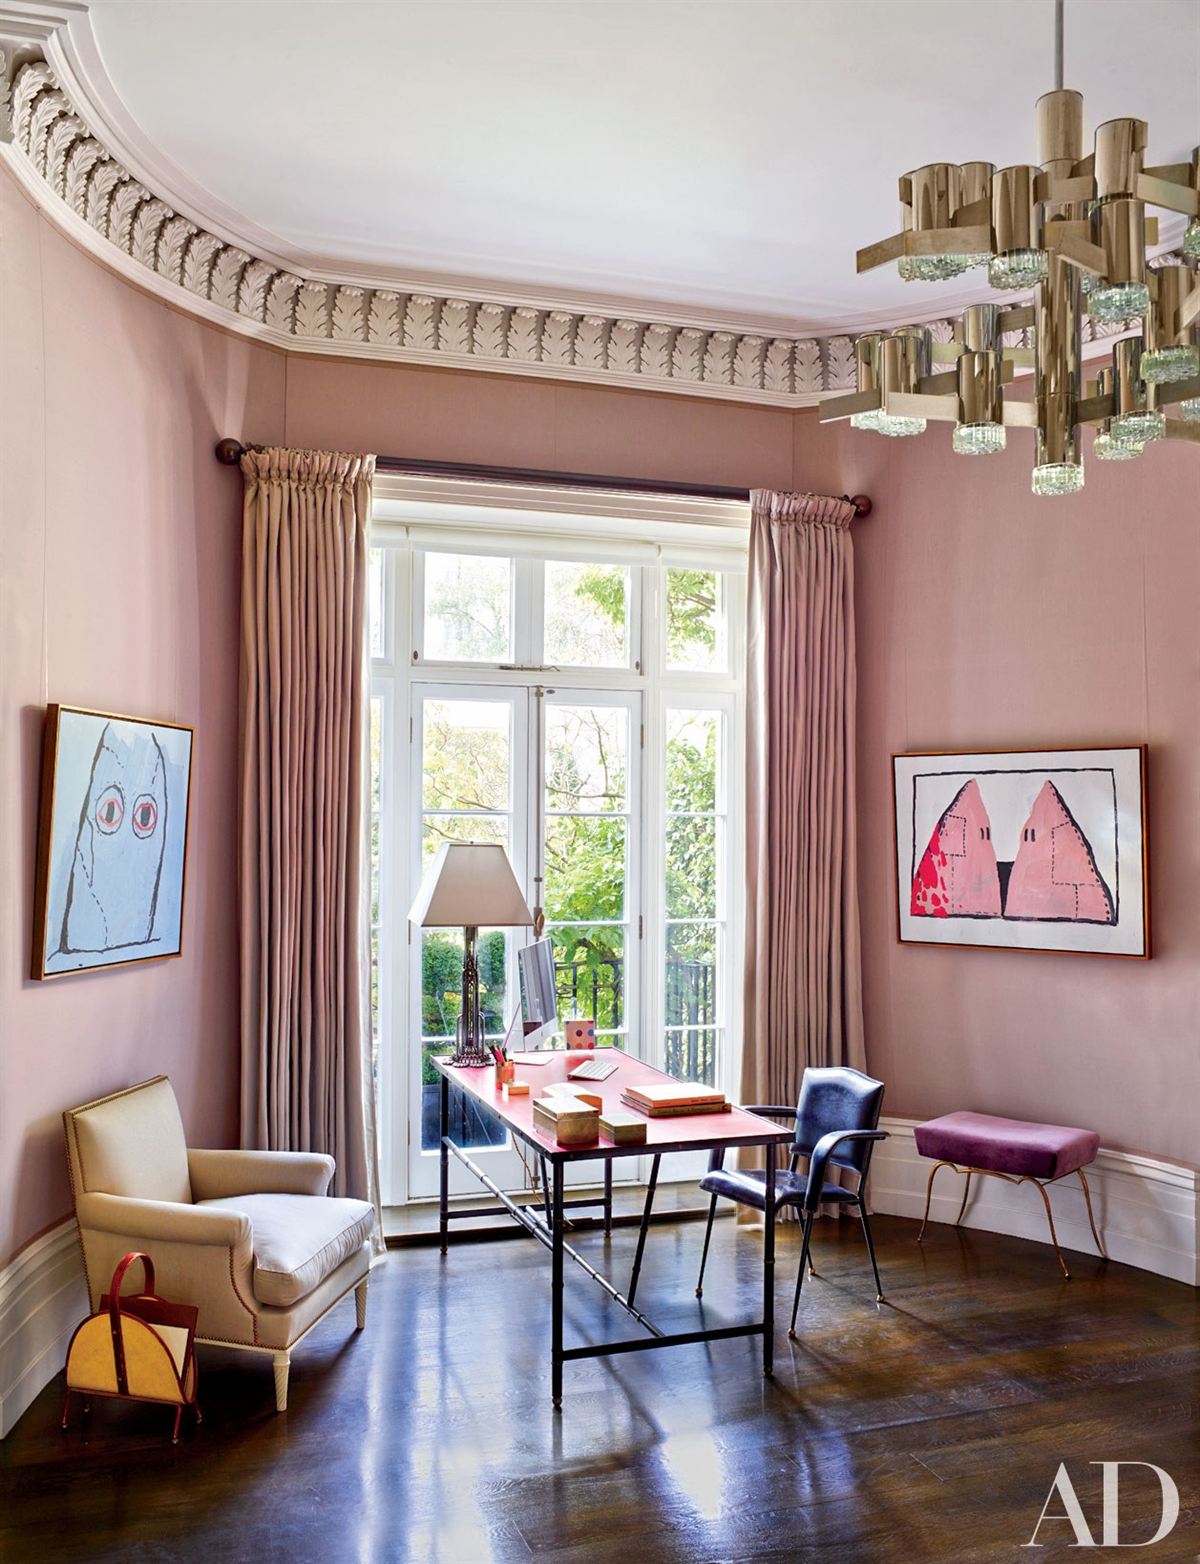 8a Color_of_the_Year_Rose_Quartz_Serenity_2016_Pantone_home_decorating_ideas_interior_design_kolory_roku_pastele_w_domu_forelements_blog